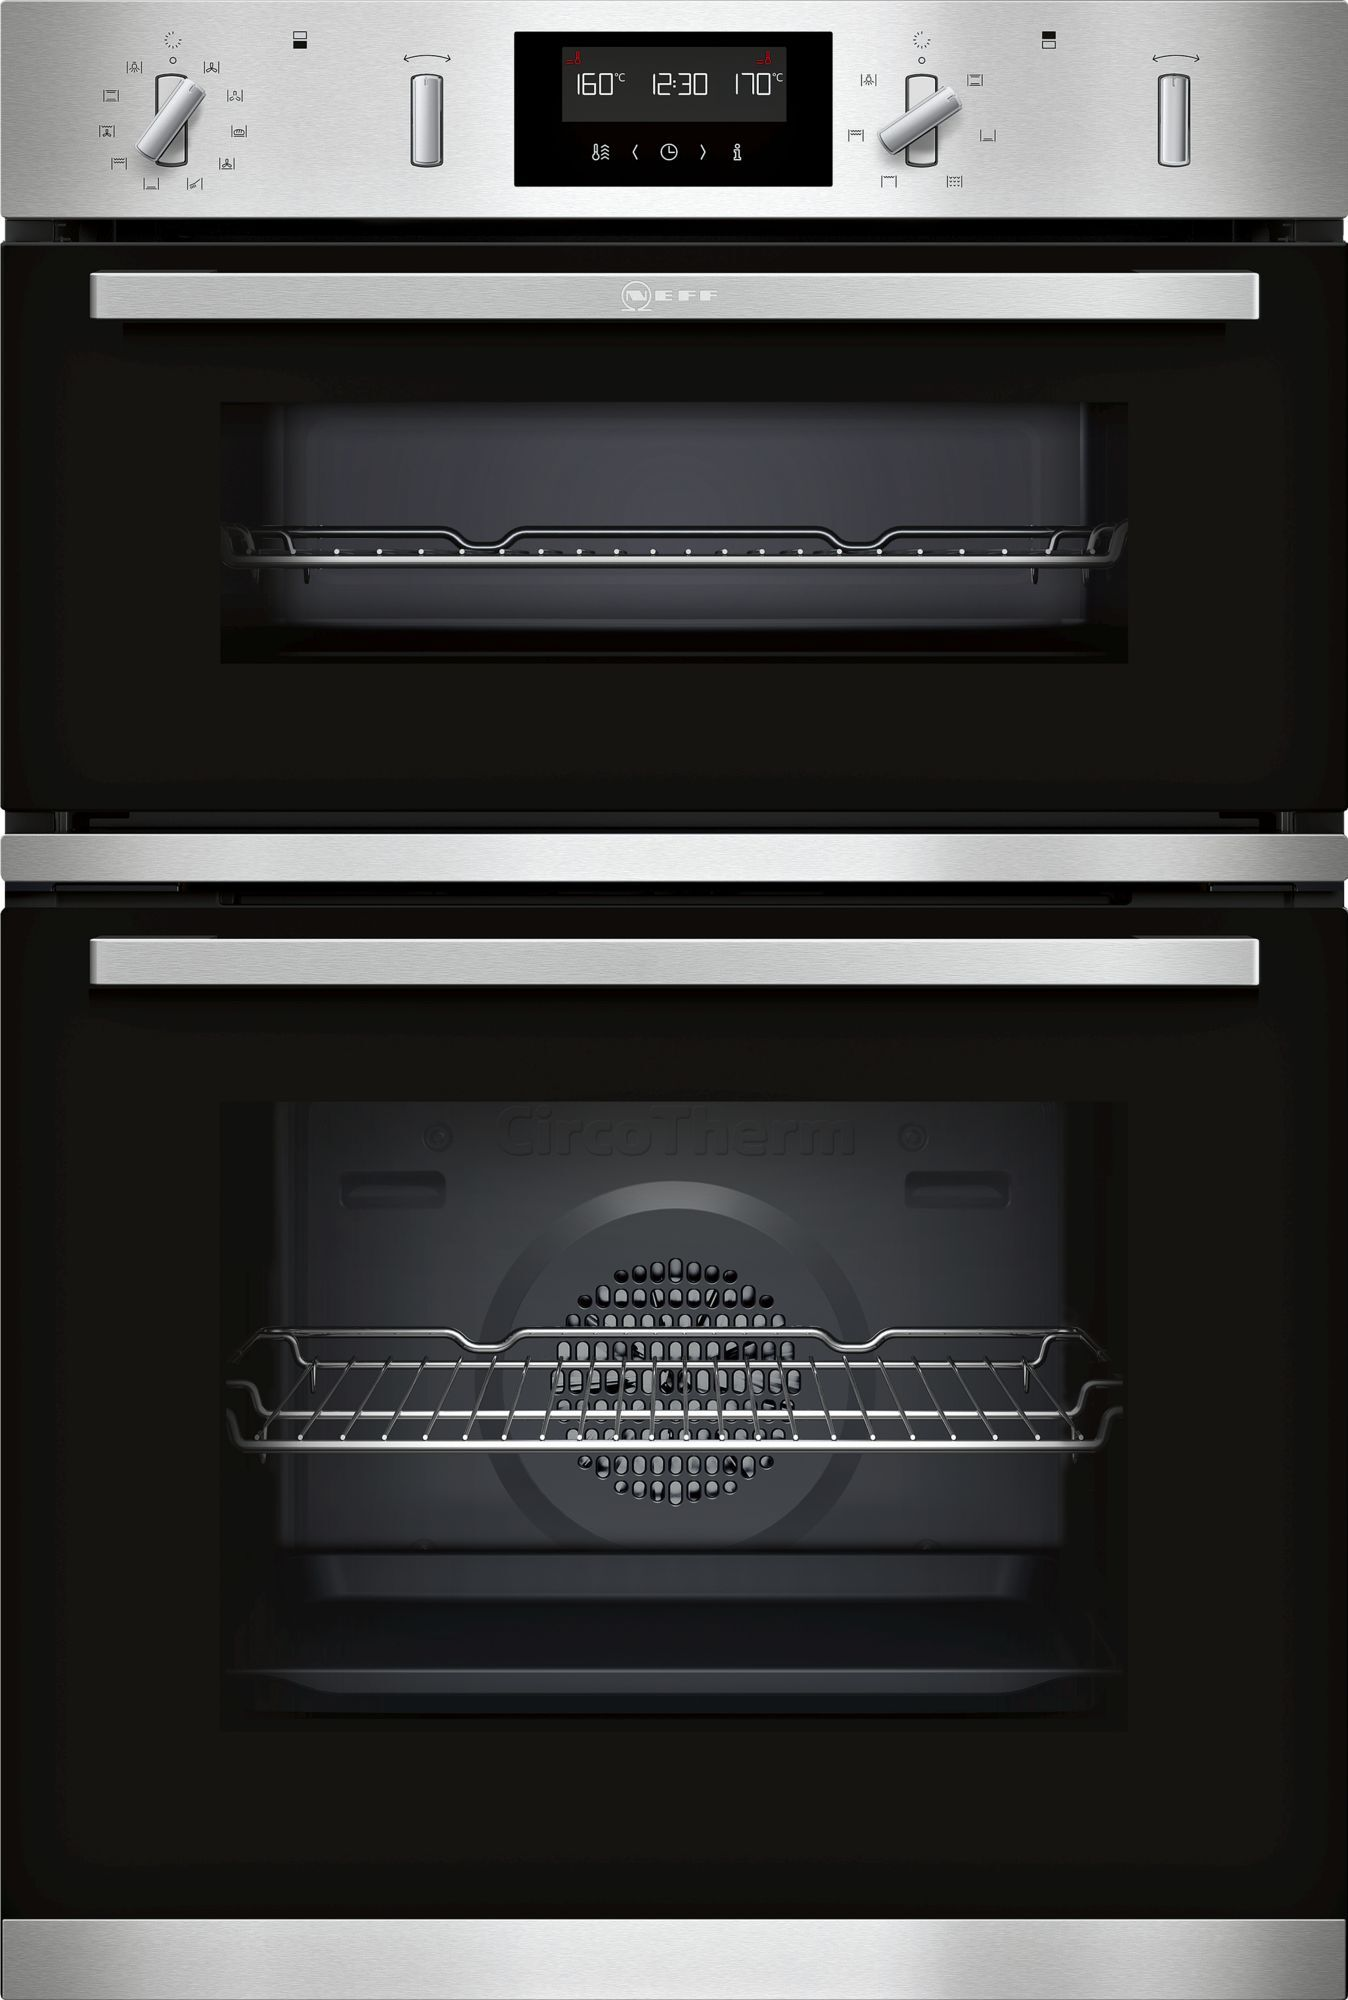 Neff N50 U2GCH7AN0B Double Built In Electric Oven